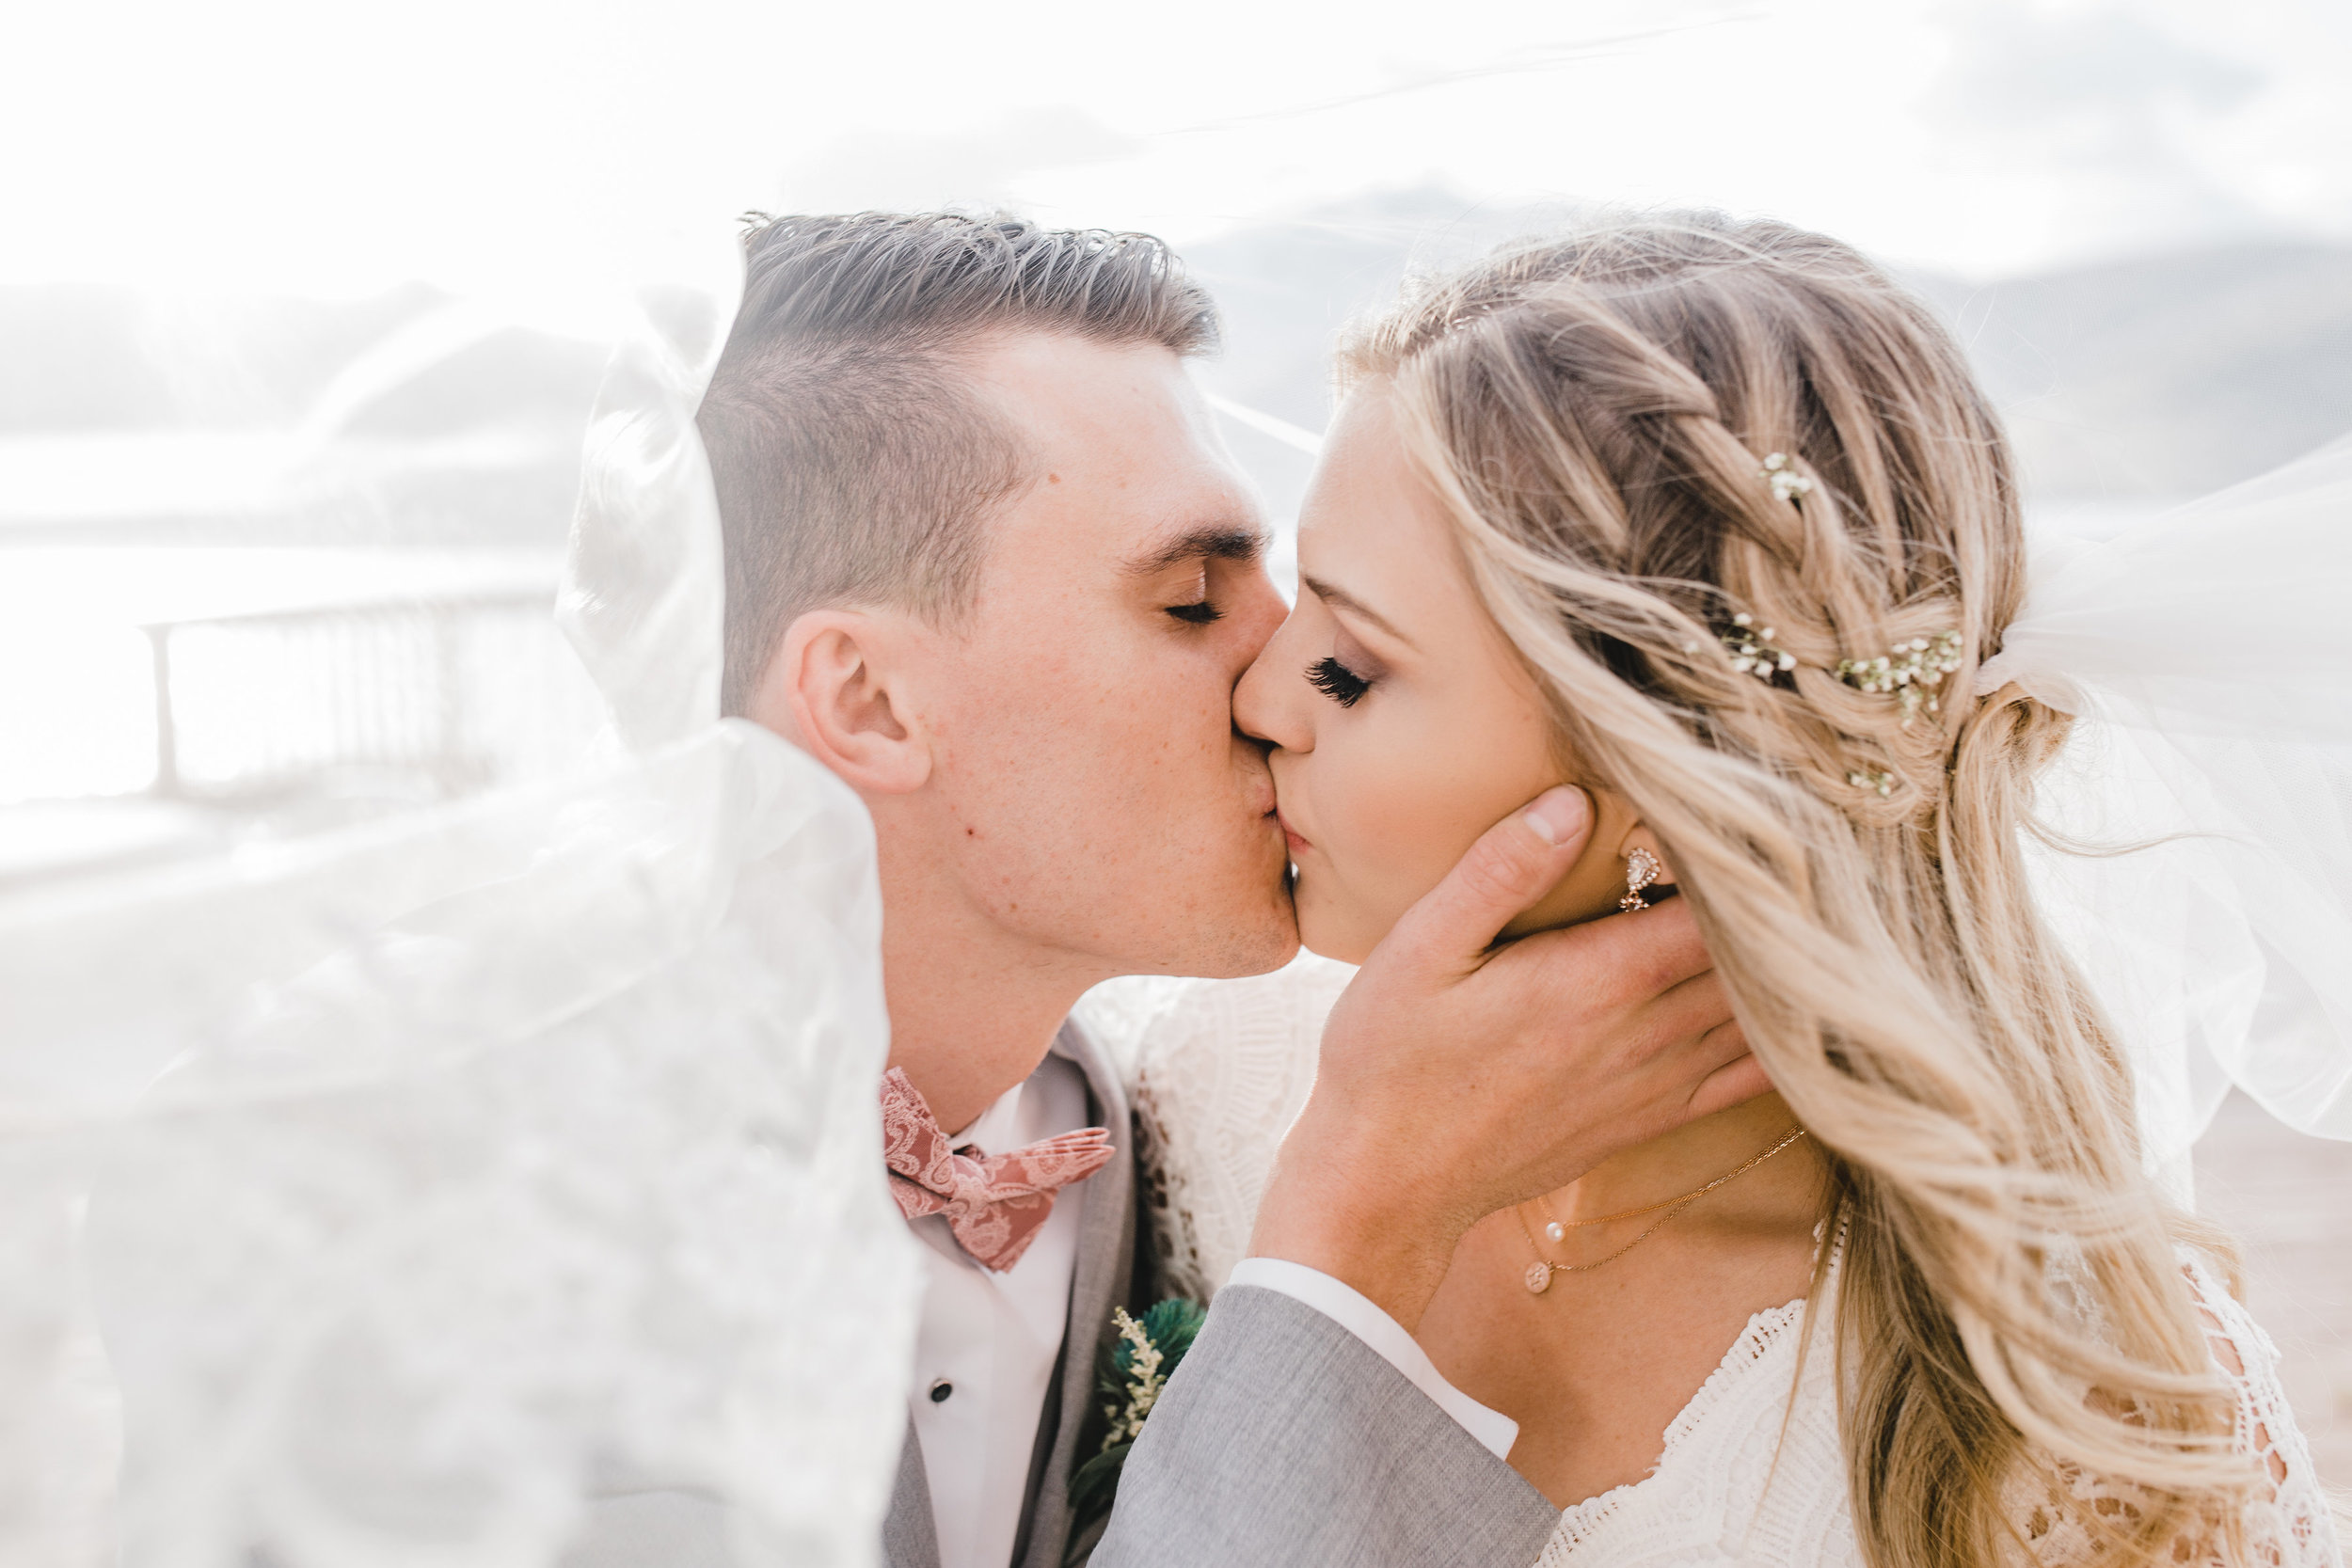 best wedding photographer in cache valley utah kissing blowing veil wedding bow tie